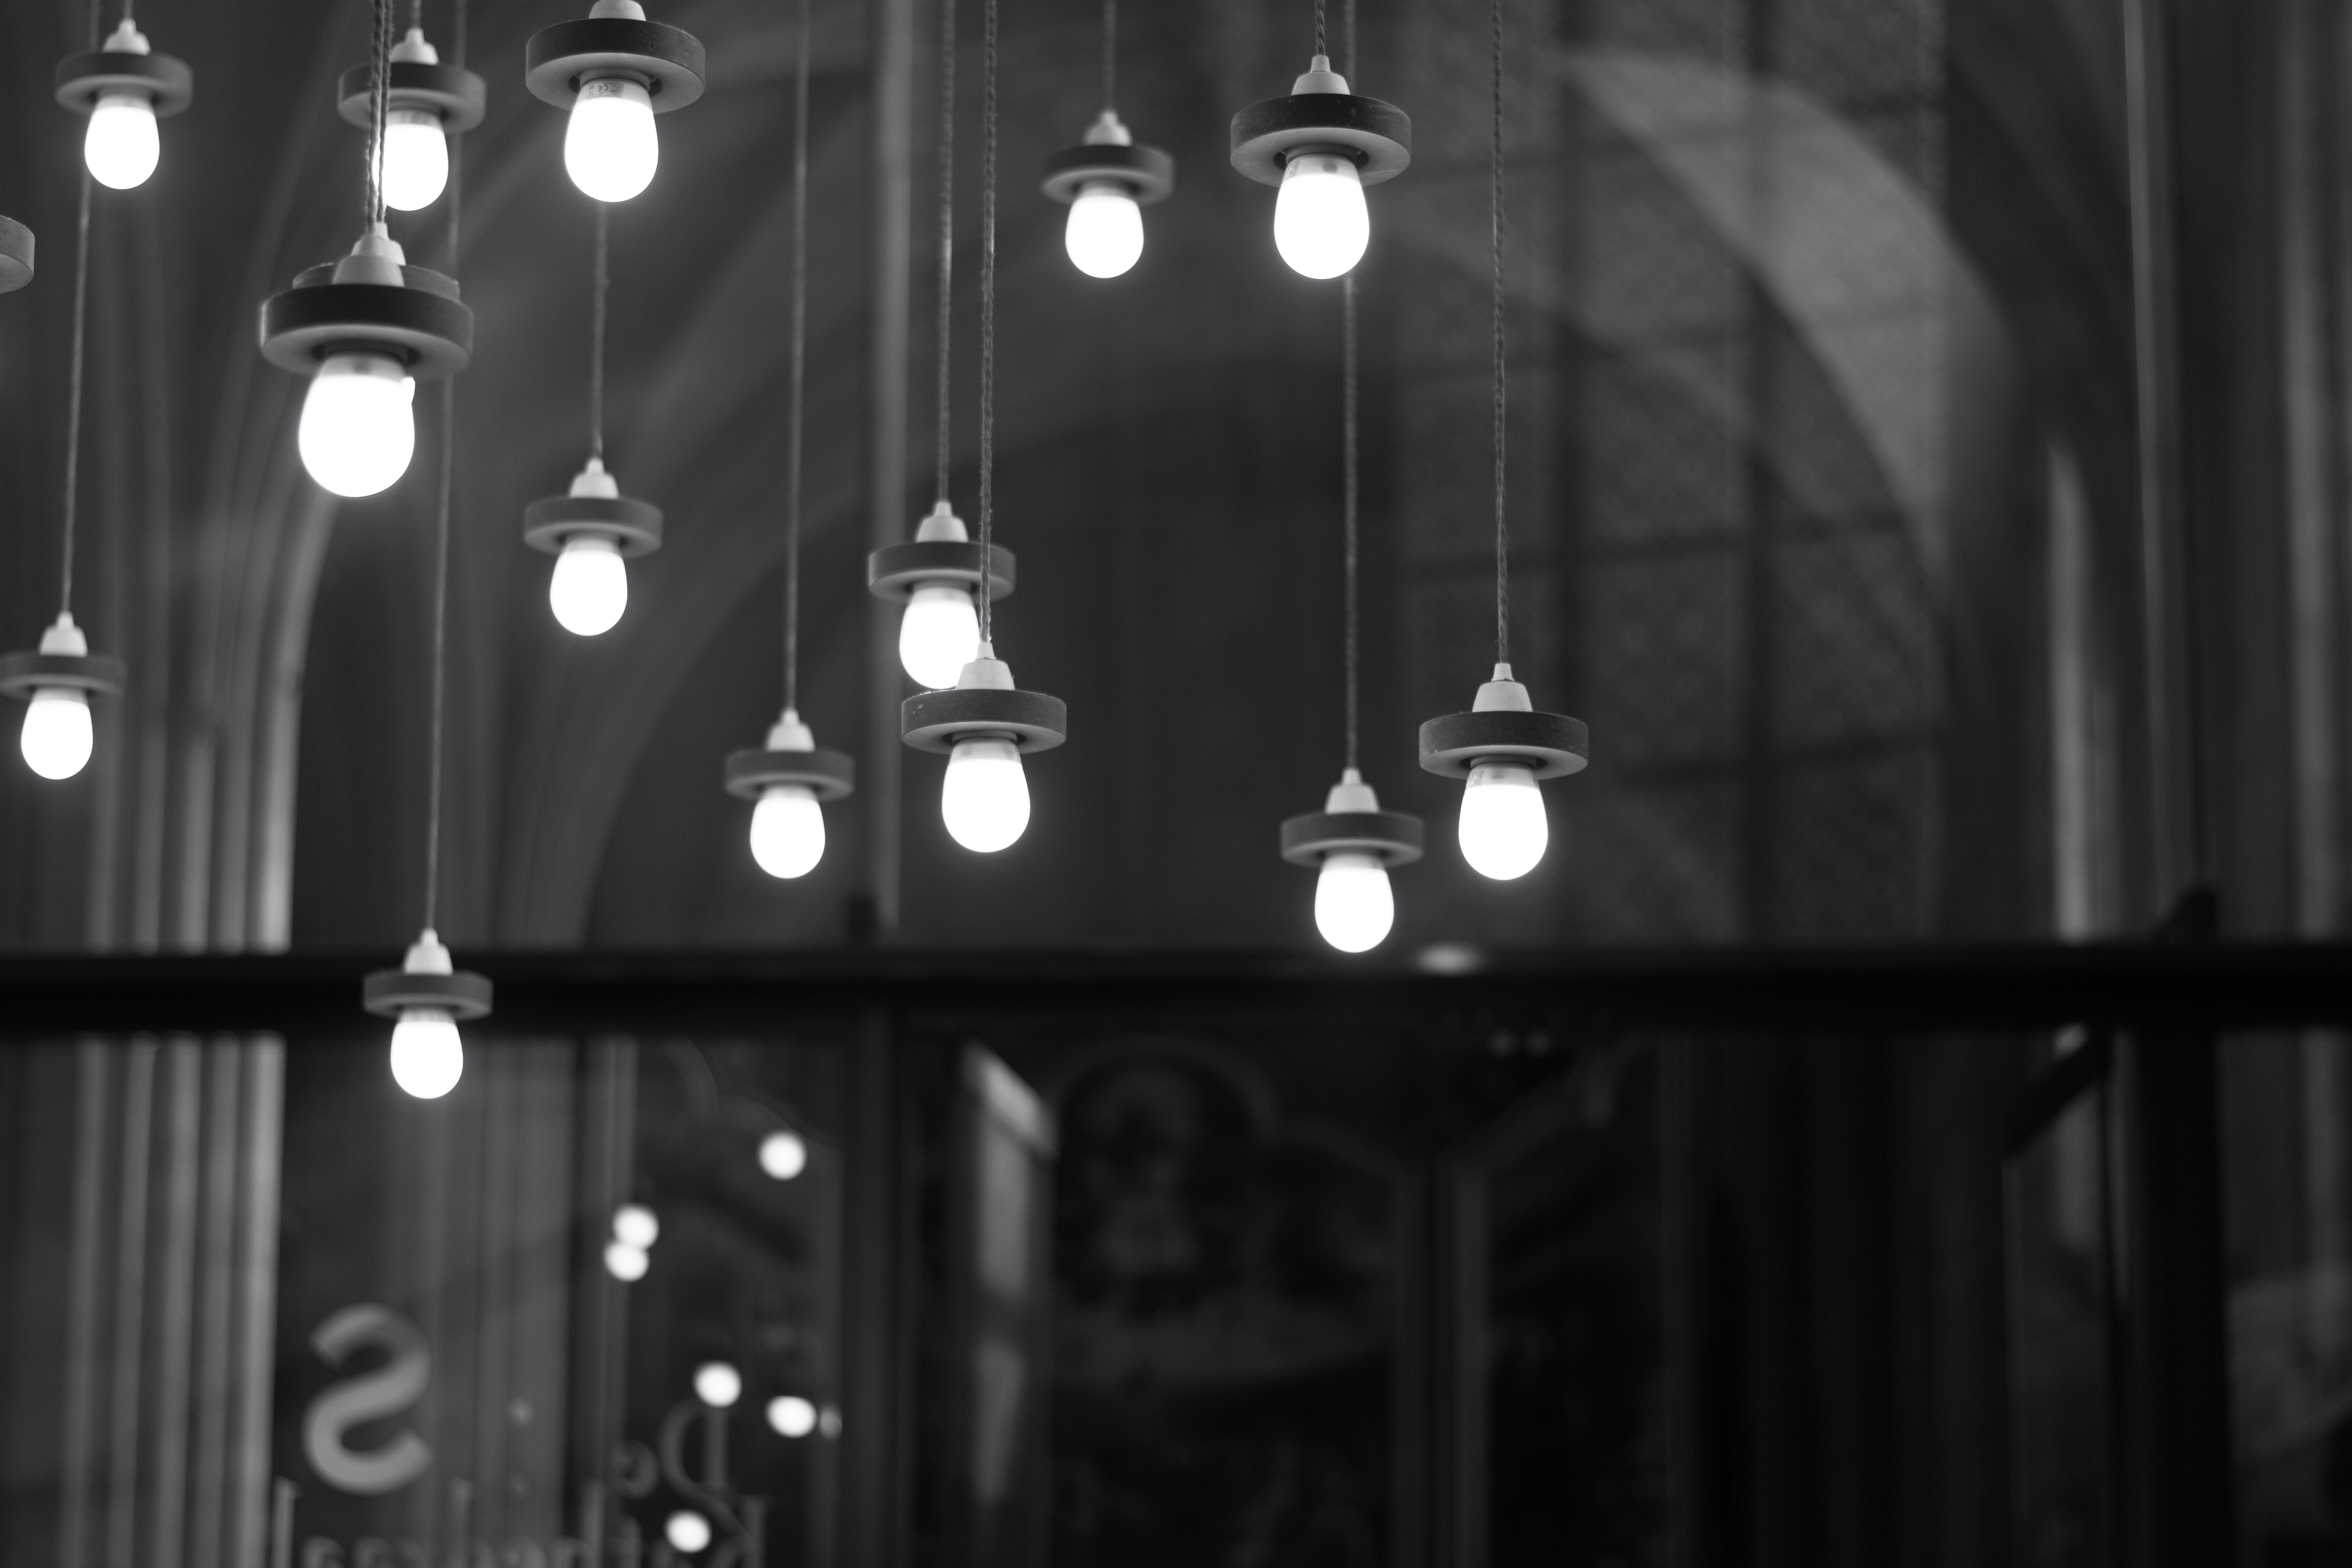 Grayscale Photography of Hanging Lights